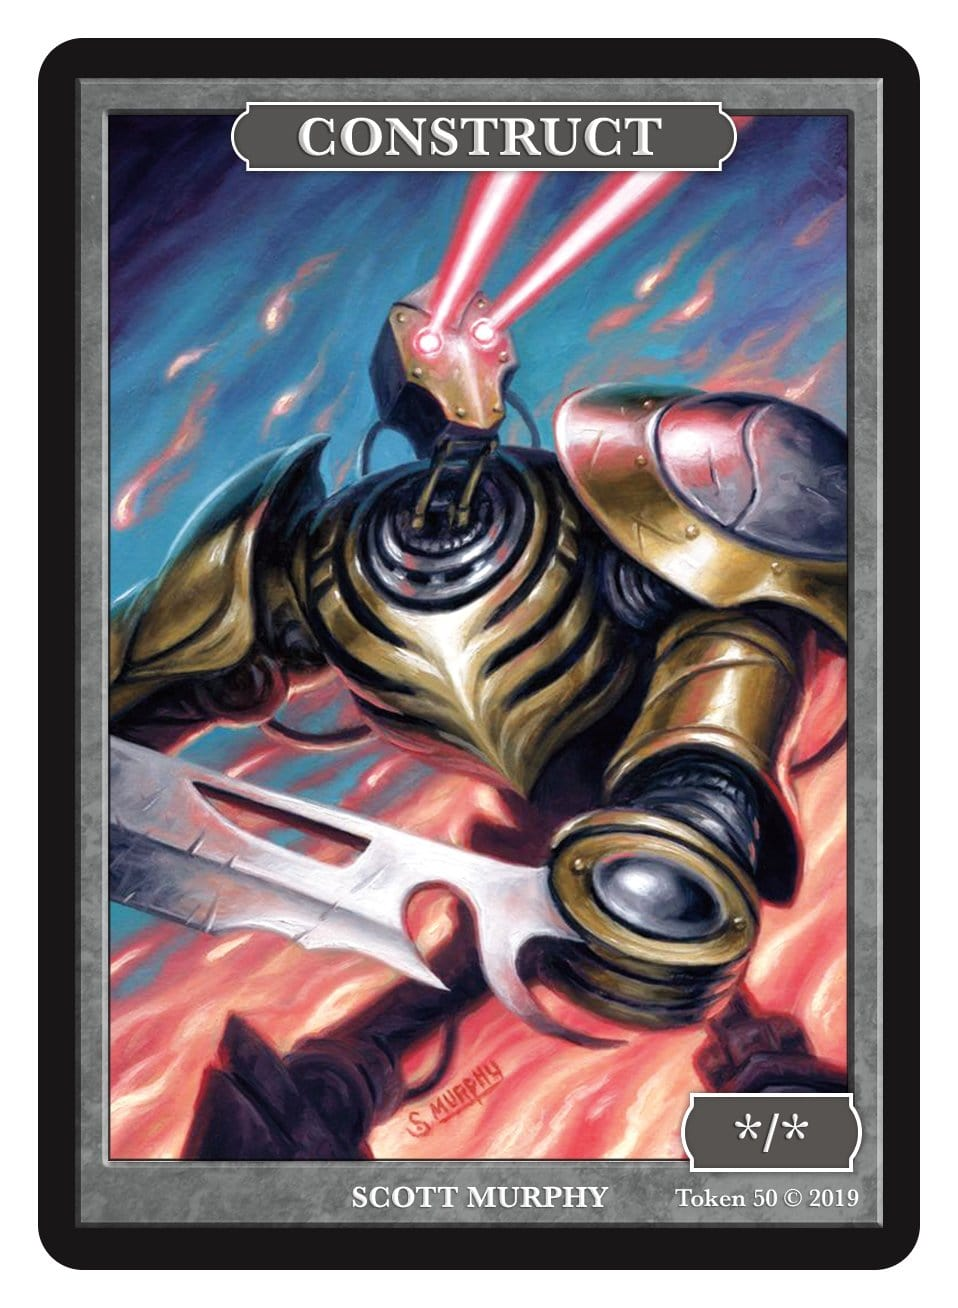 Construct Token (*/*) by Scott Murphy - Token - Original Magic Art - Accessories for Magic the Gathering and other card games